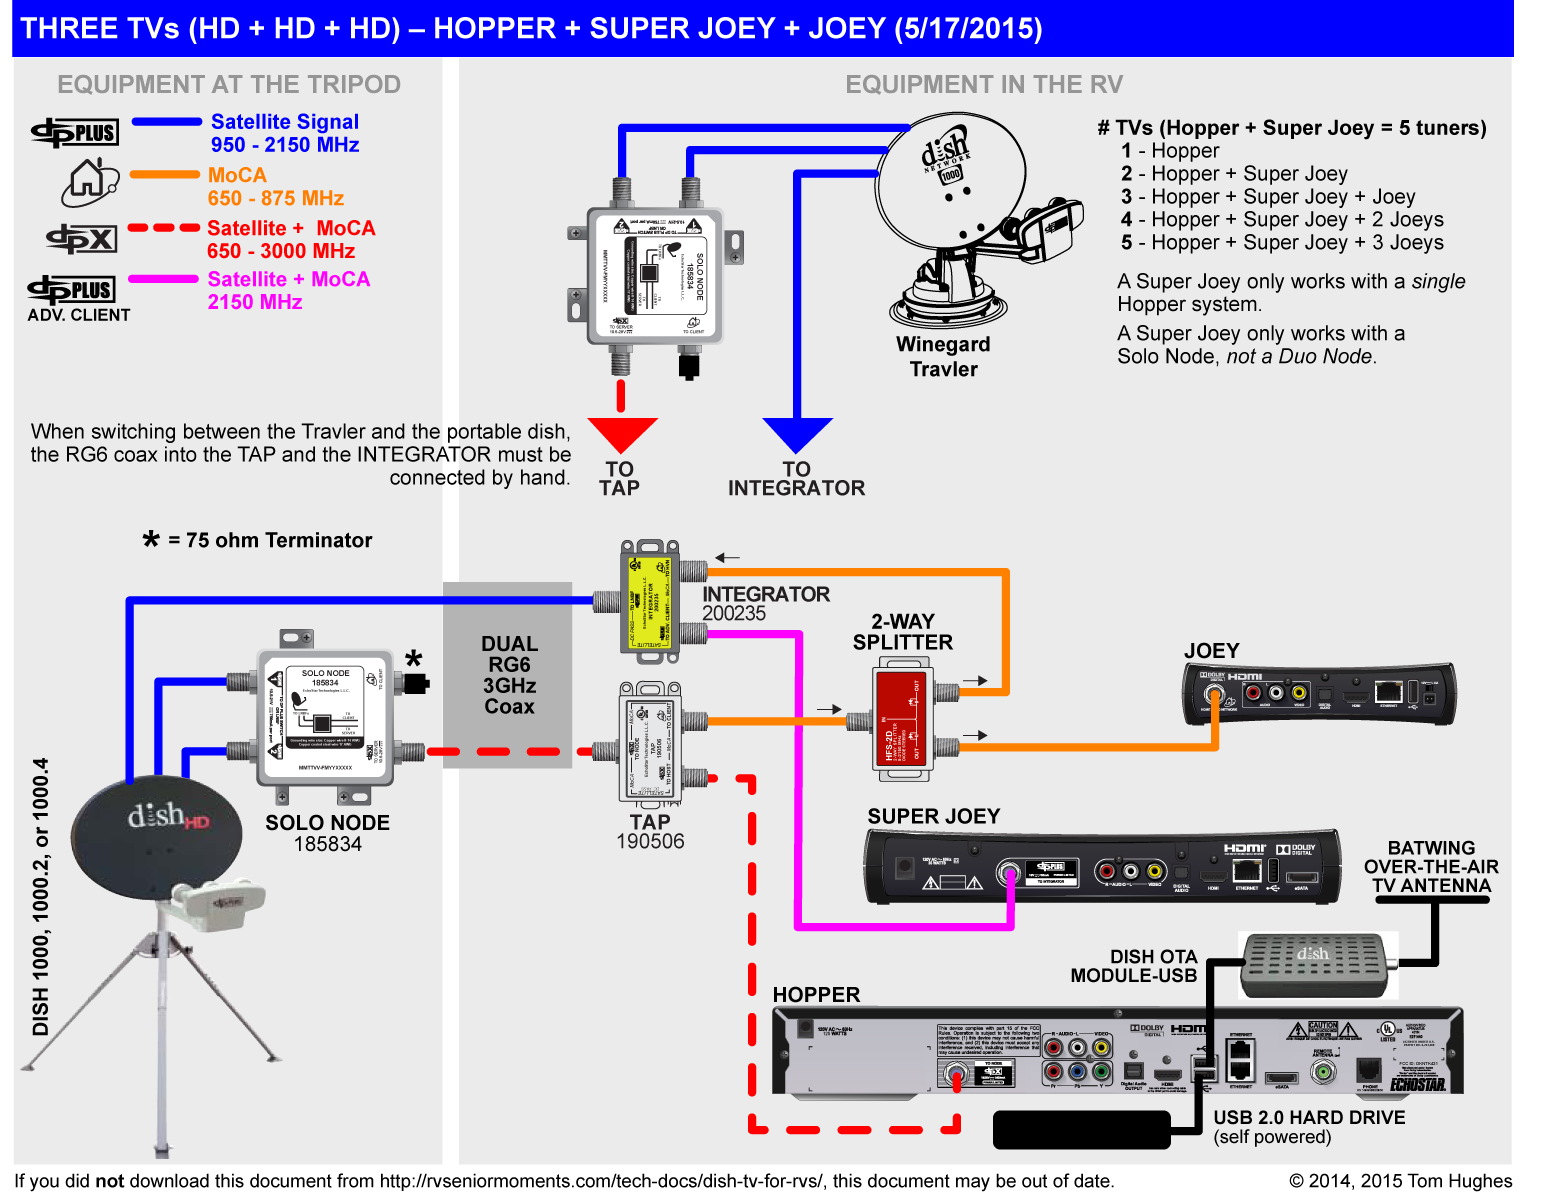 Dishhd Wiring Schematic Diagrams Network Dish Hopper 3 Diagram Cooling U2022 Mifinder Co Hdchina Asia